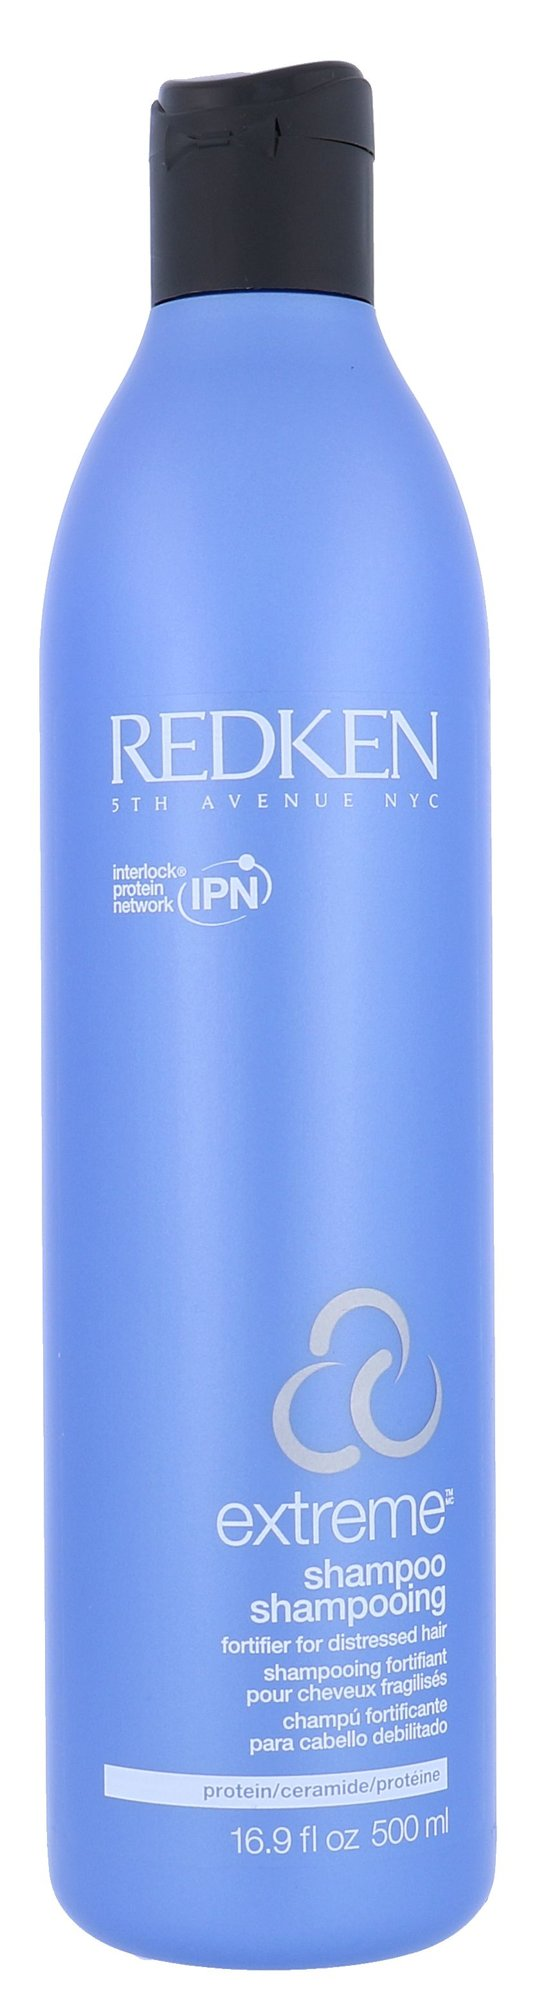 Redken Extreme Cosmetic 500ml